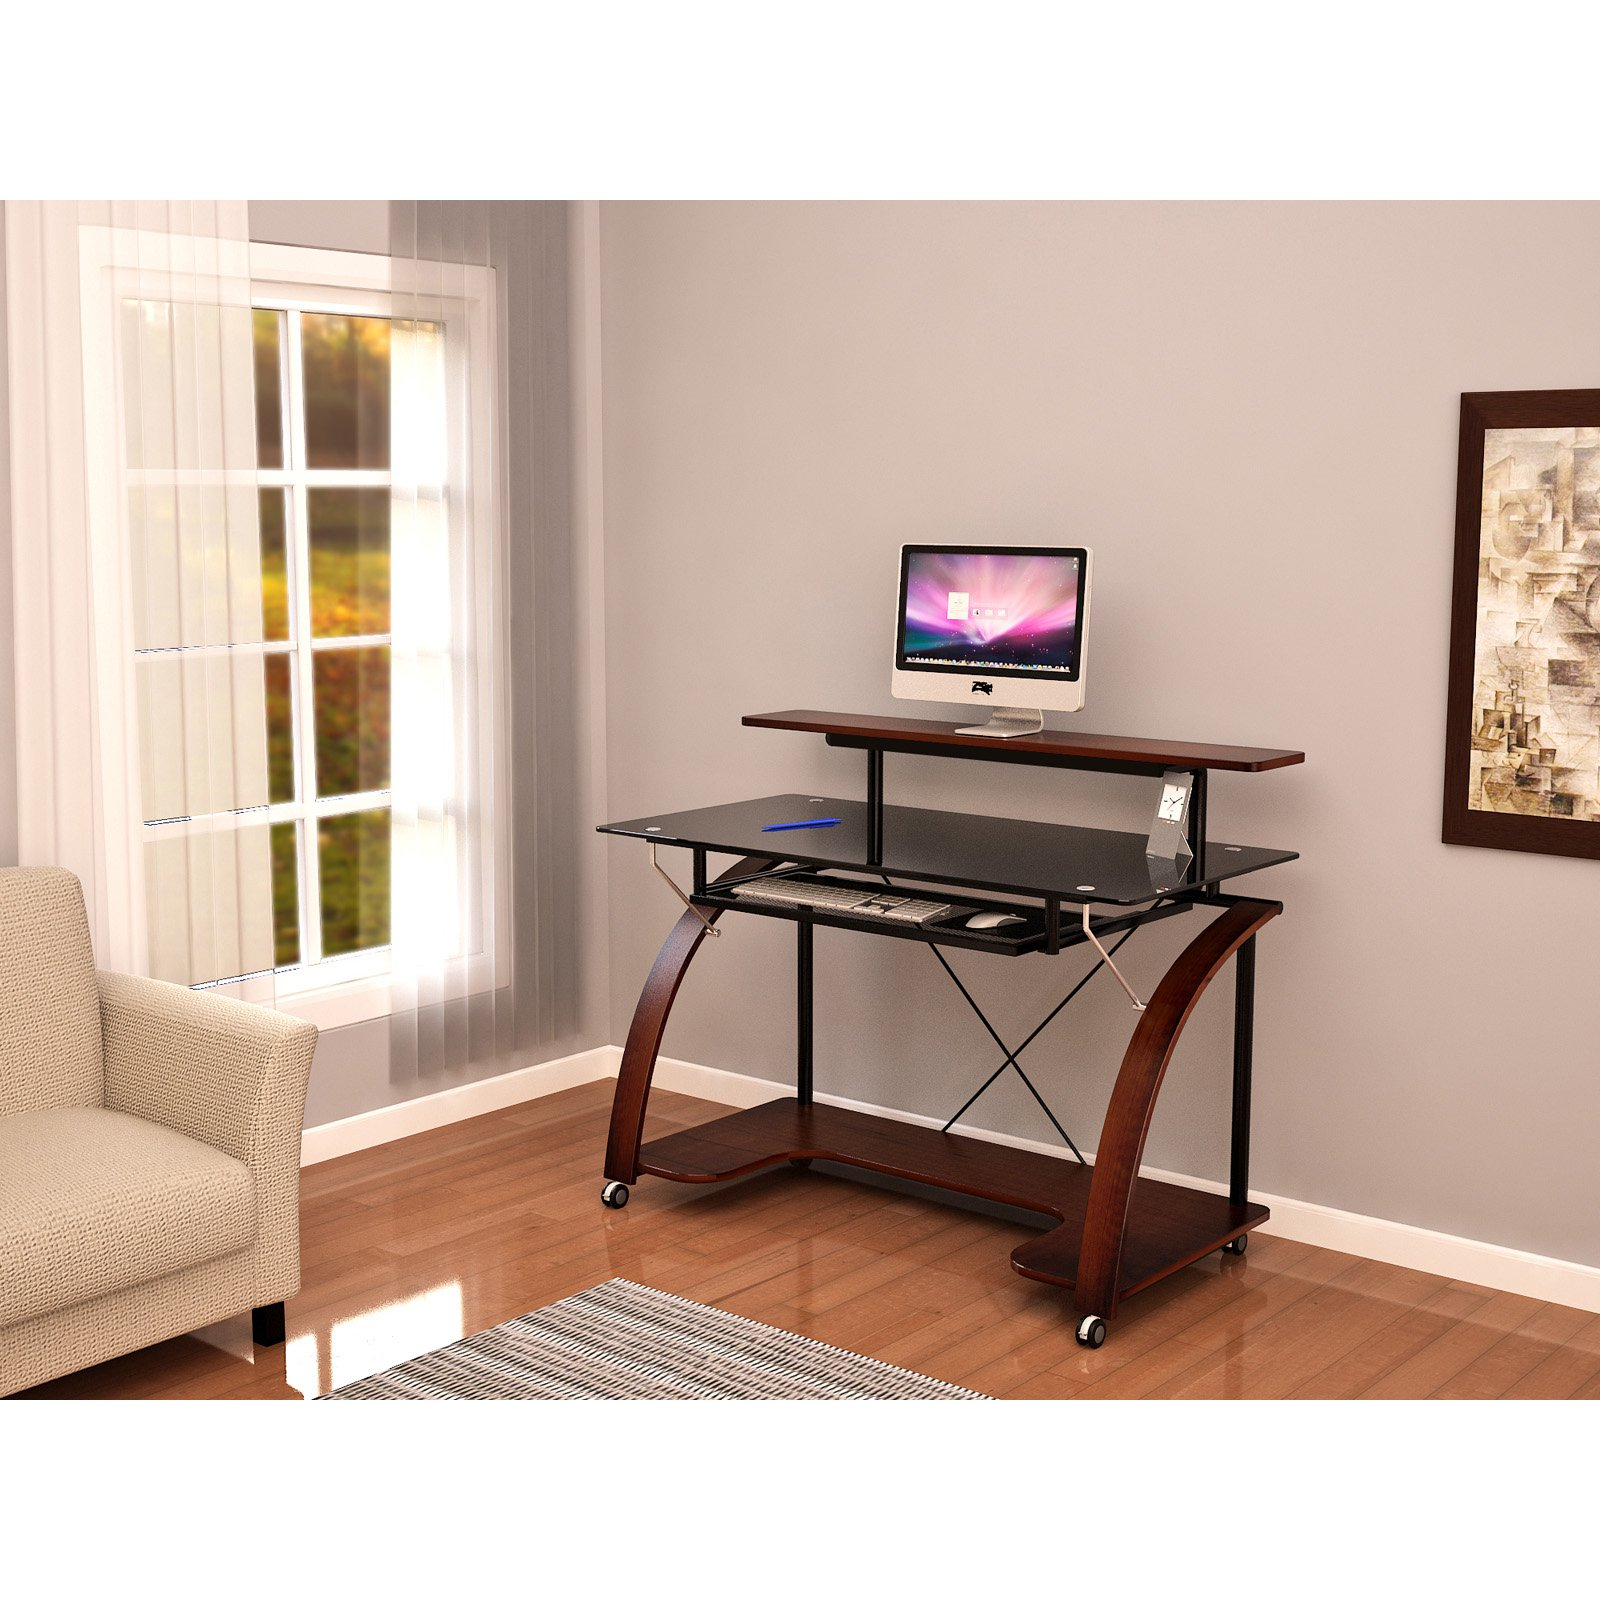 white laa designs x stands tv corliving workstation mobile instruction z desk manual satin outlet line corner stand ideas